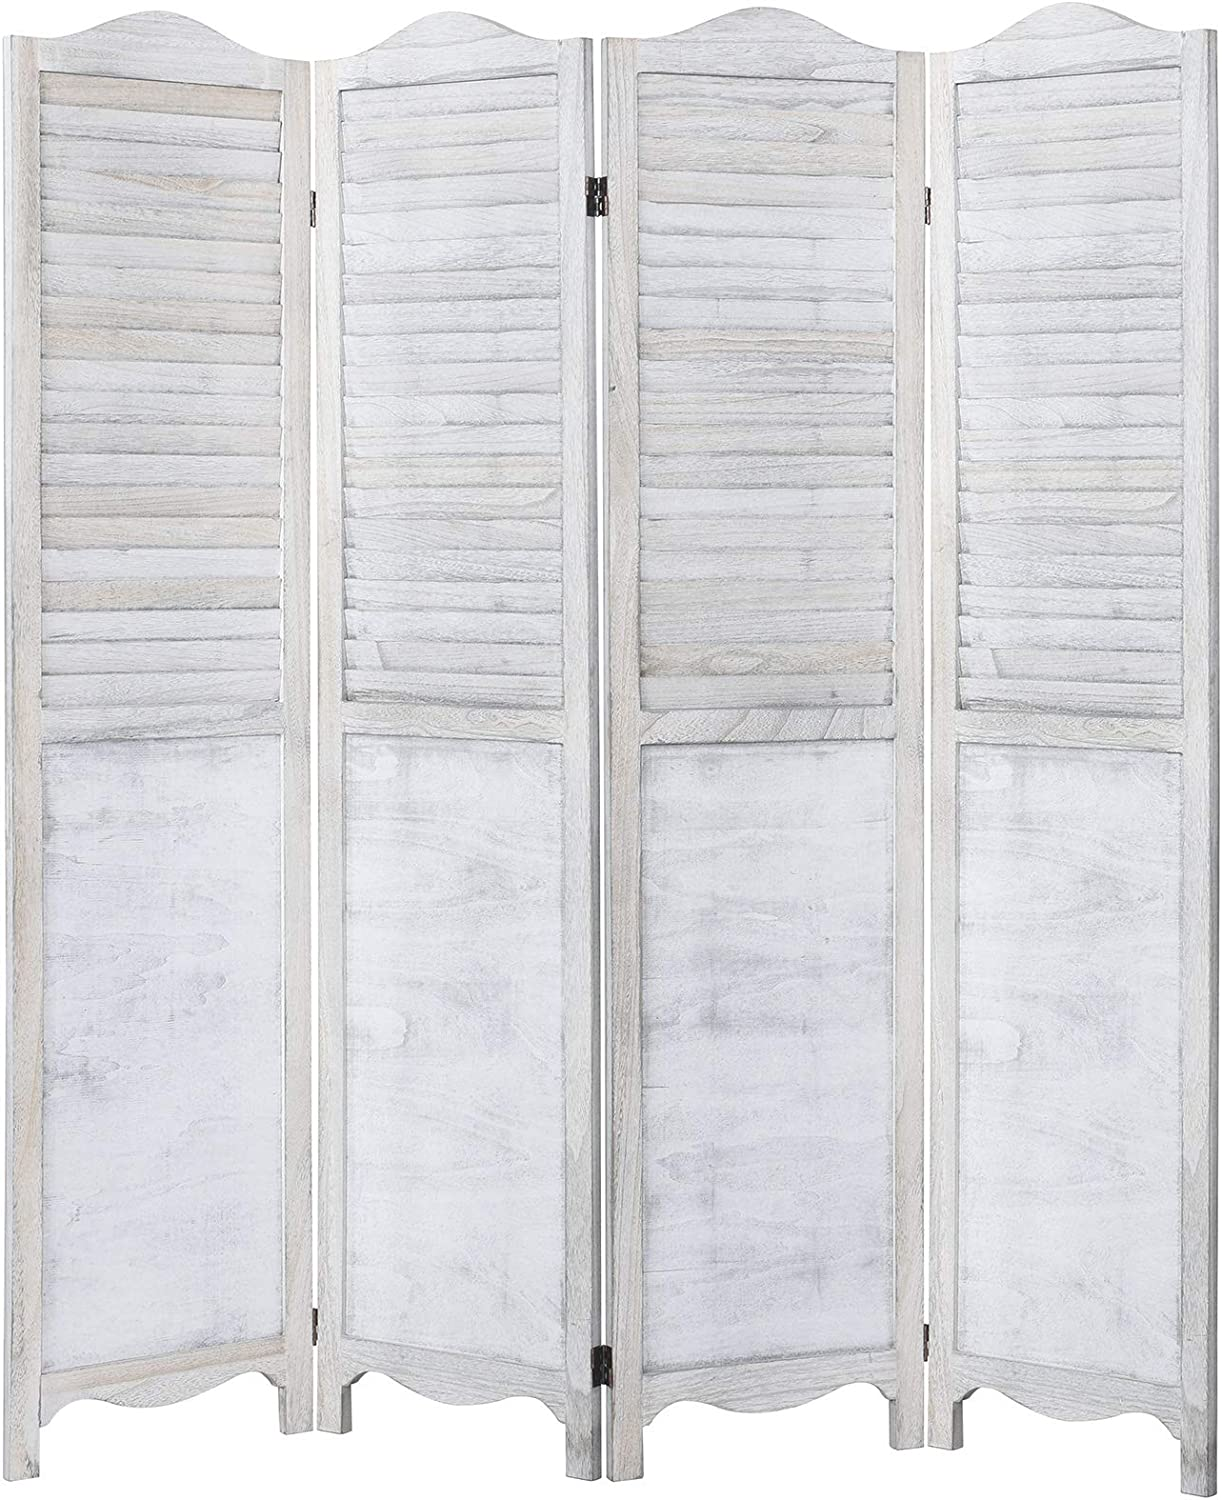 RHF 5.6ft.Tall Vintage Rustic Design Wood Crafted Room Divider/4 Panel Panels Screen Folding Privacy Partition Wall Room divider Wood Screen Freestanding 4 Panel -Panel 5.6-Feet,White